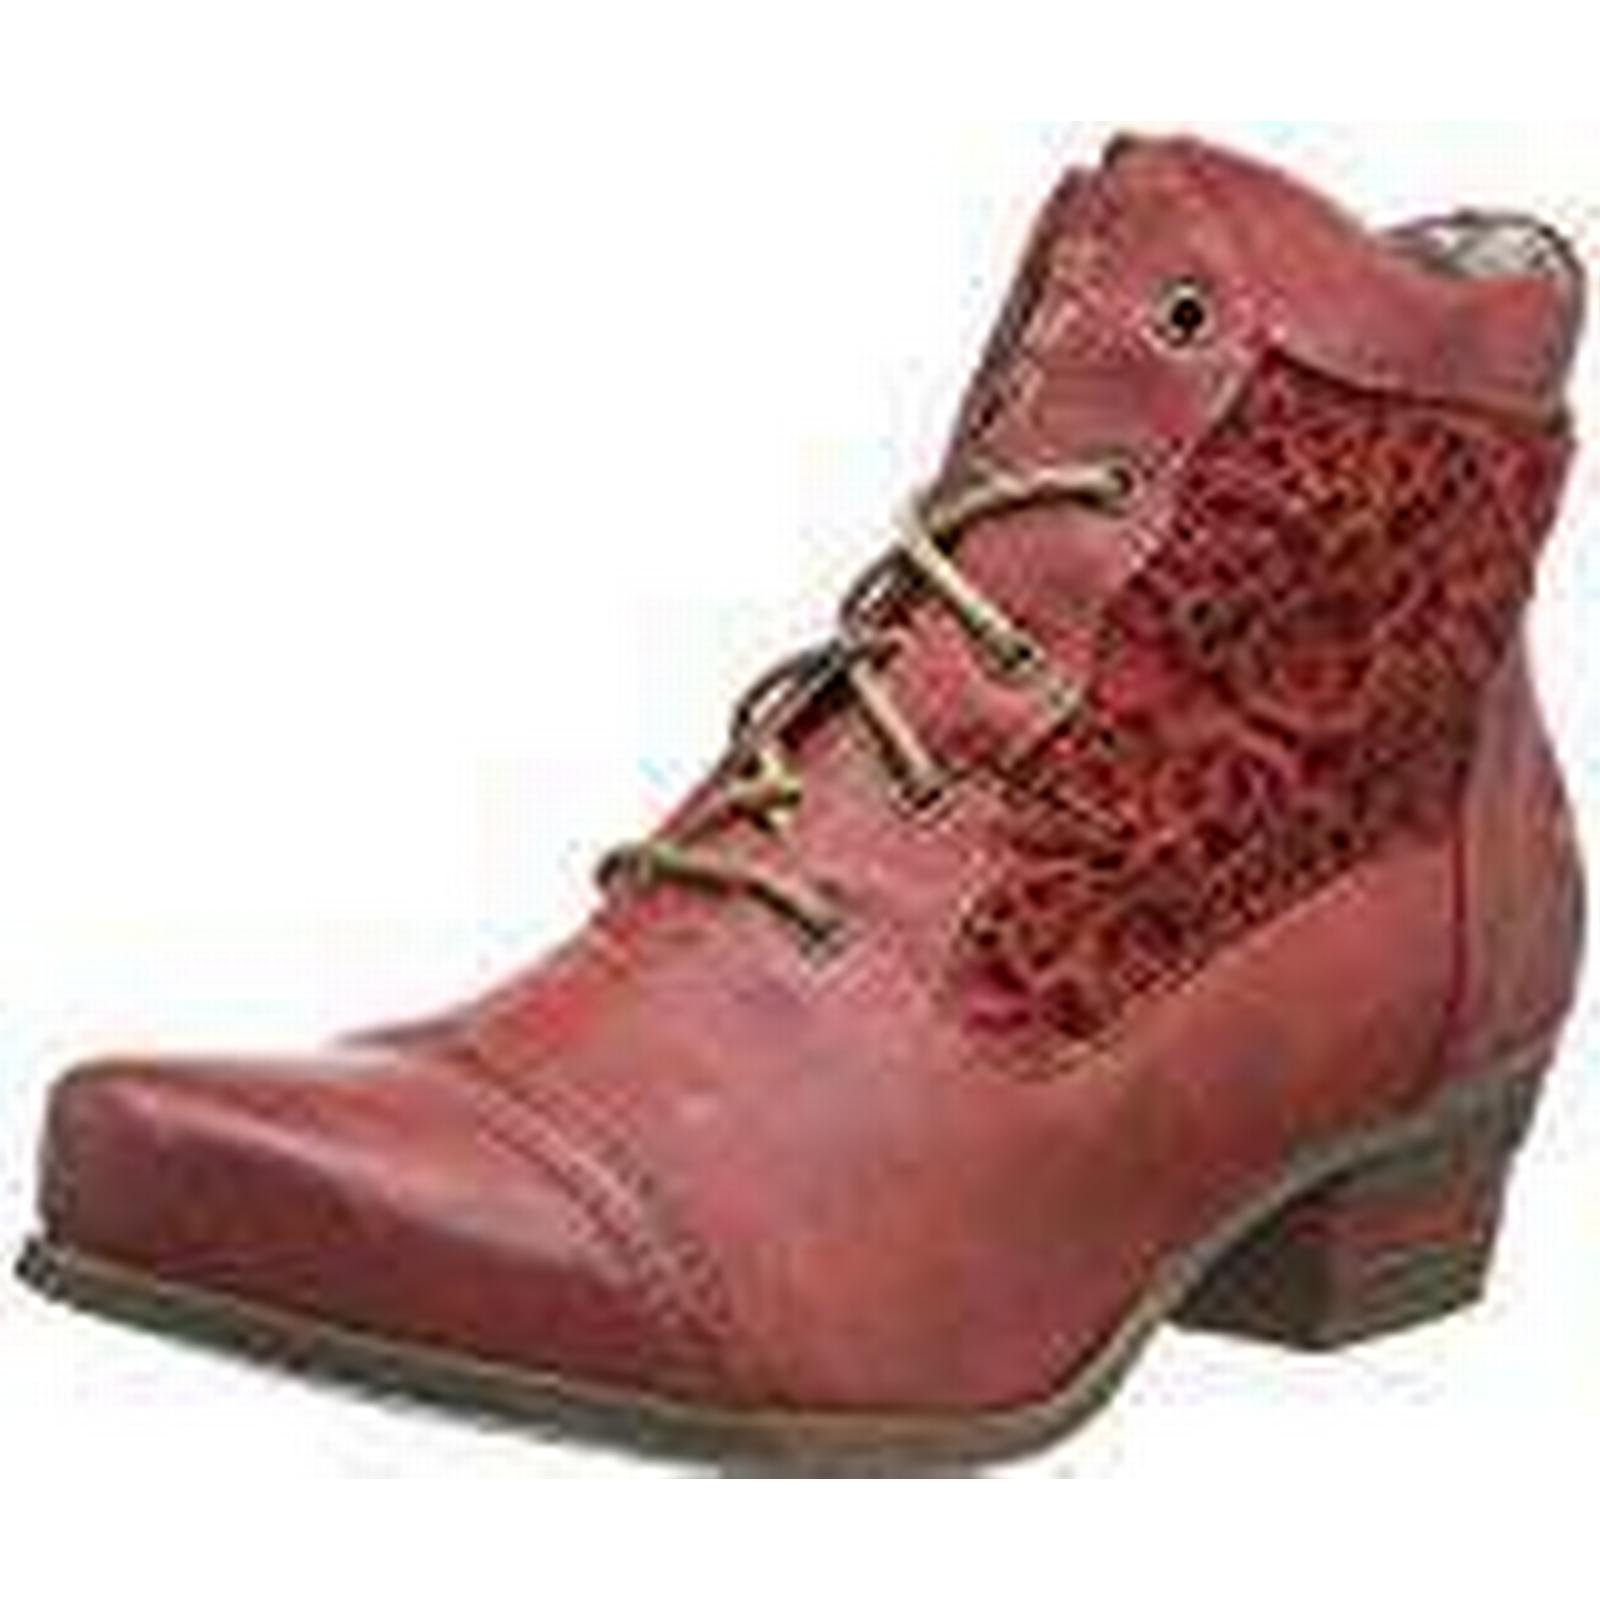 Mustang 1187-501-5, Women's Ankle Boots, UK Red (5 Rot), 5 UK Boots, (38 EU) 258416